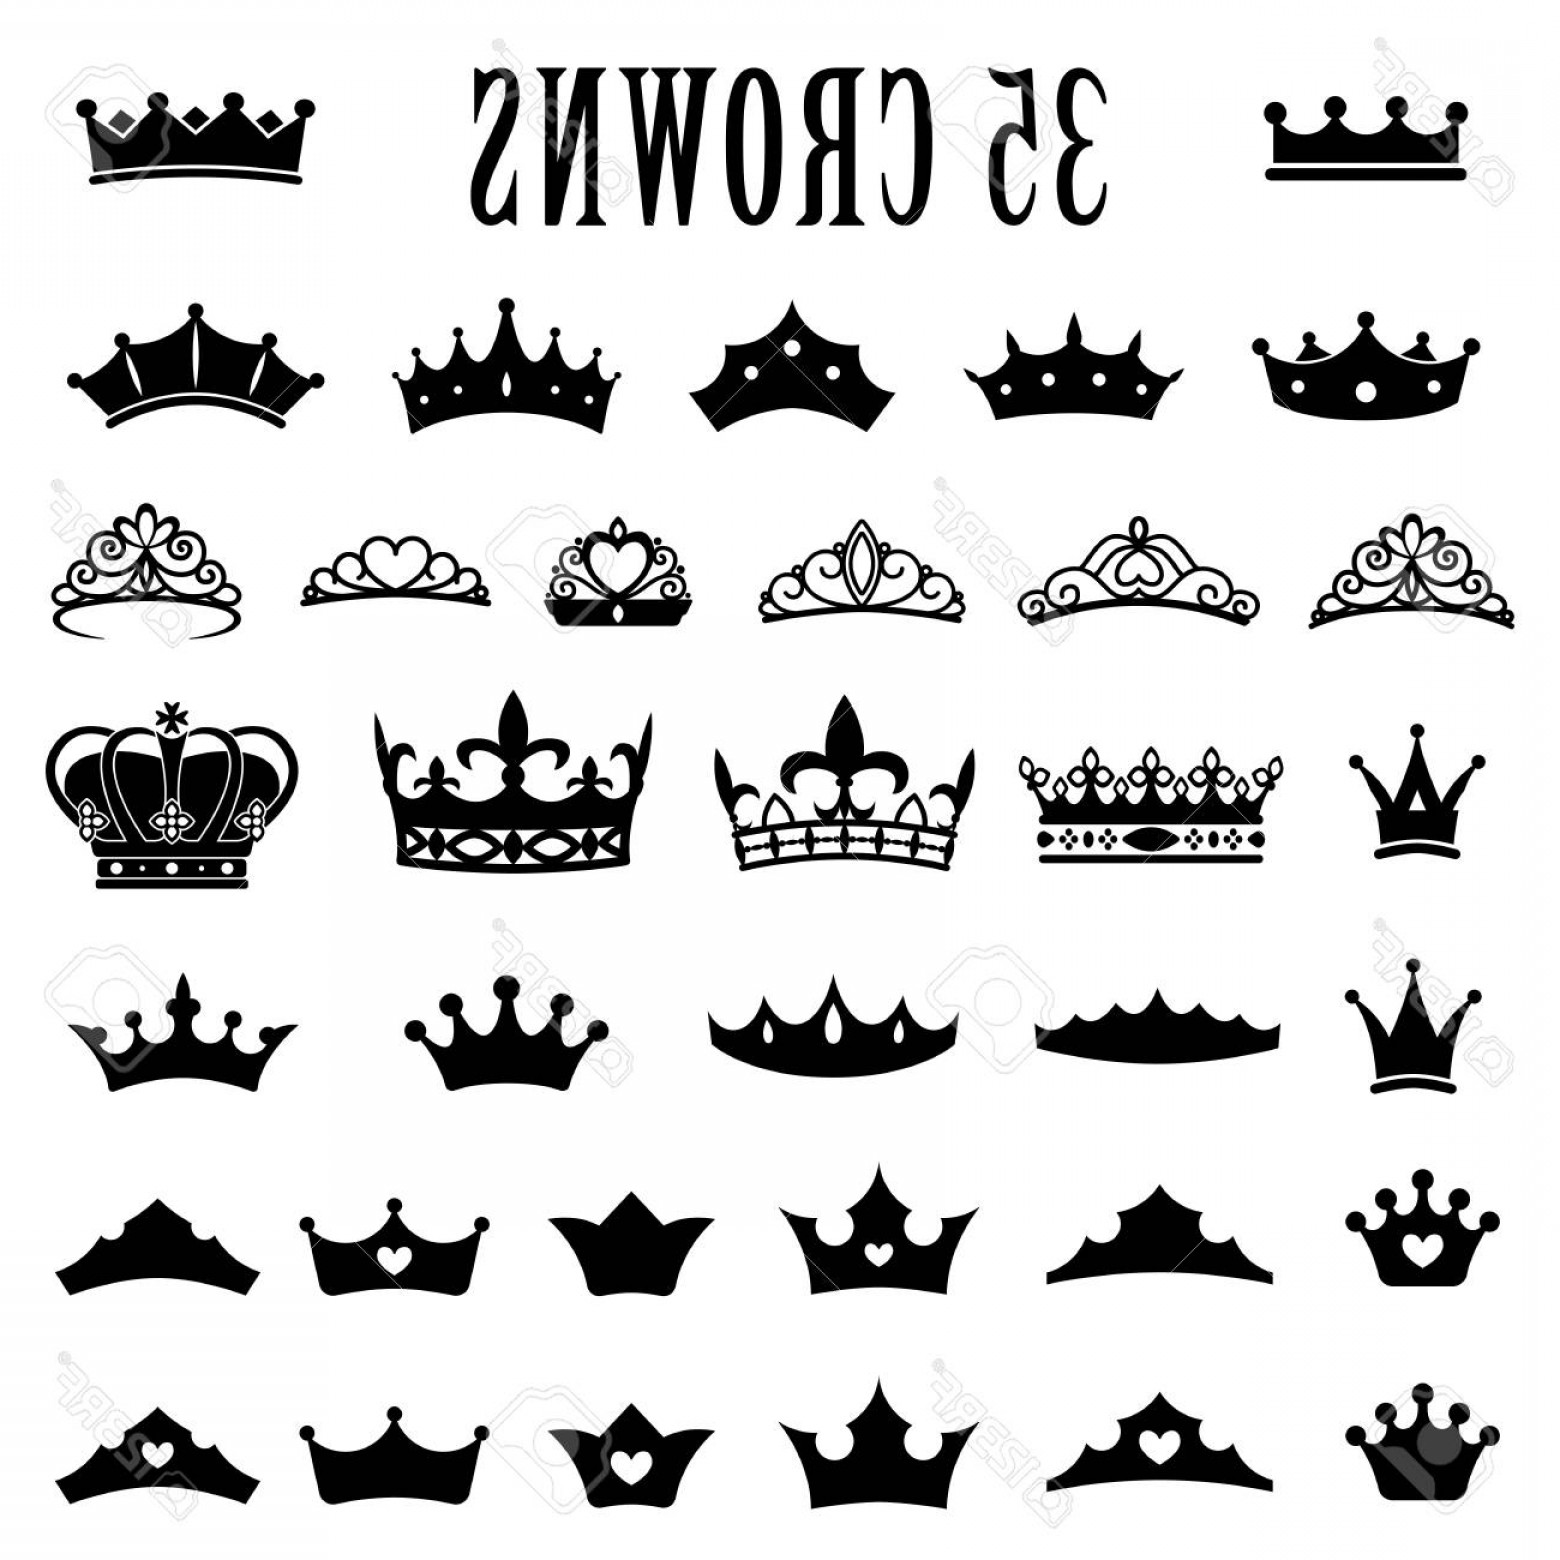 Princess Crown Vector Graphic: Photostock Vector Crown Icons Princess Crown King Crowns Icon Set Antique Crowns Vector Illustration Flat Style Silhou